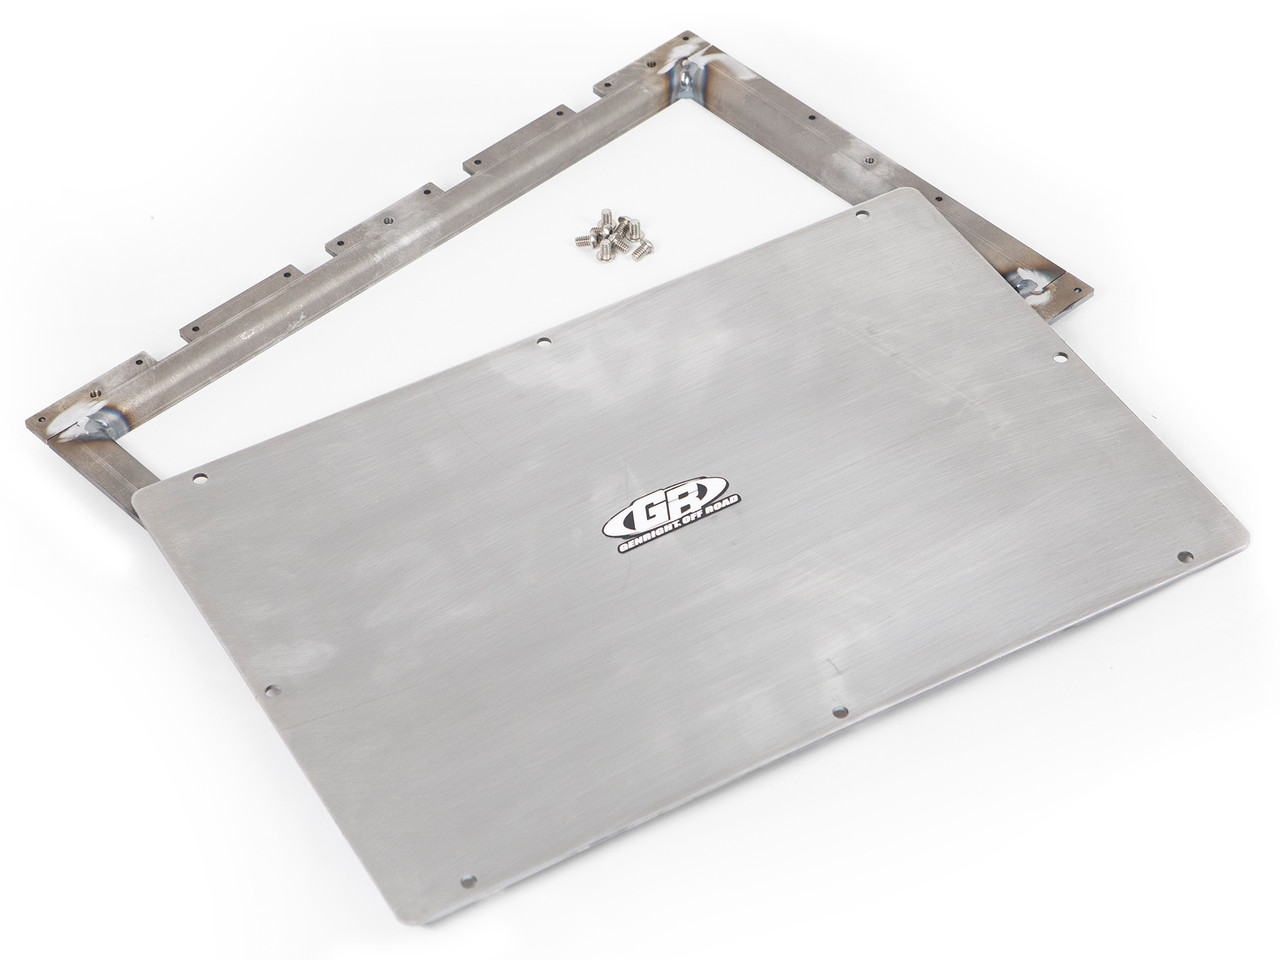 Fuel Pump Access Panel for the Jeep LJ